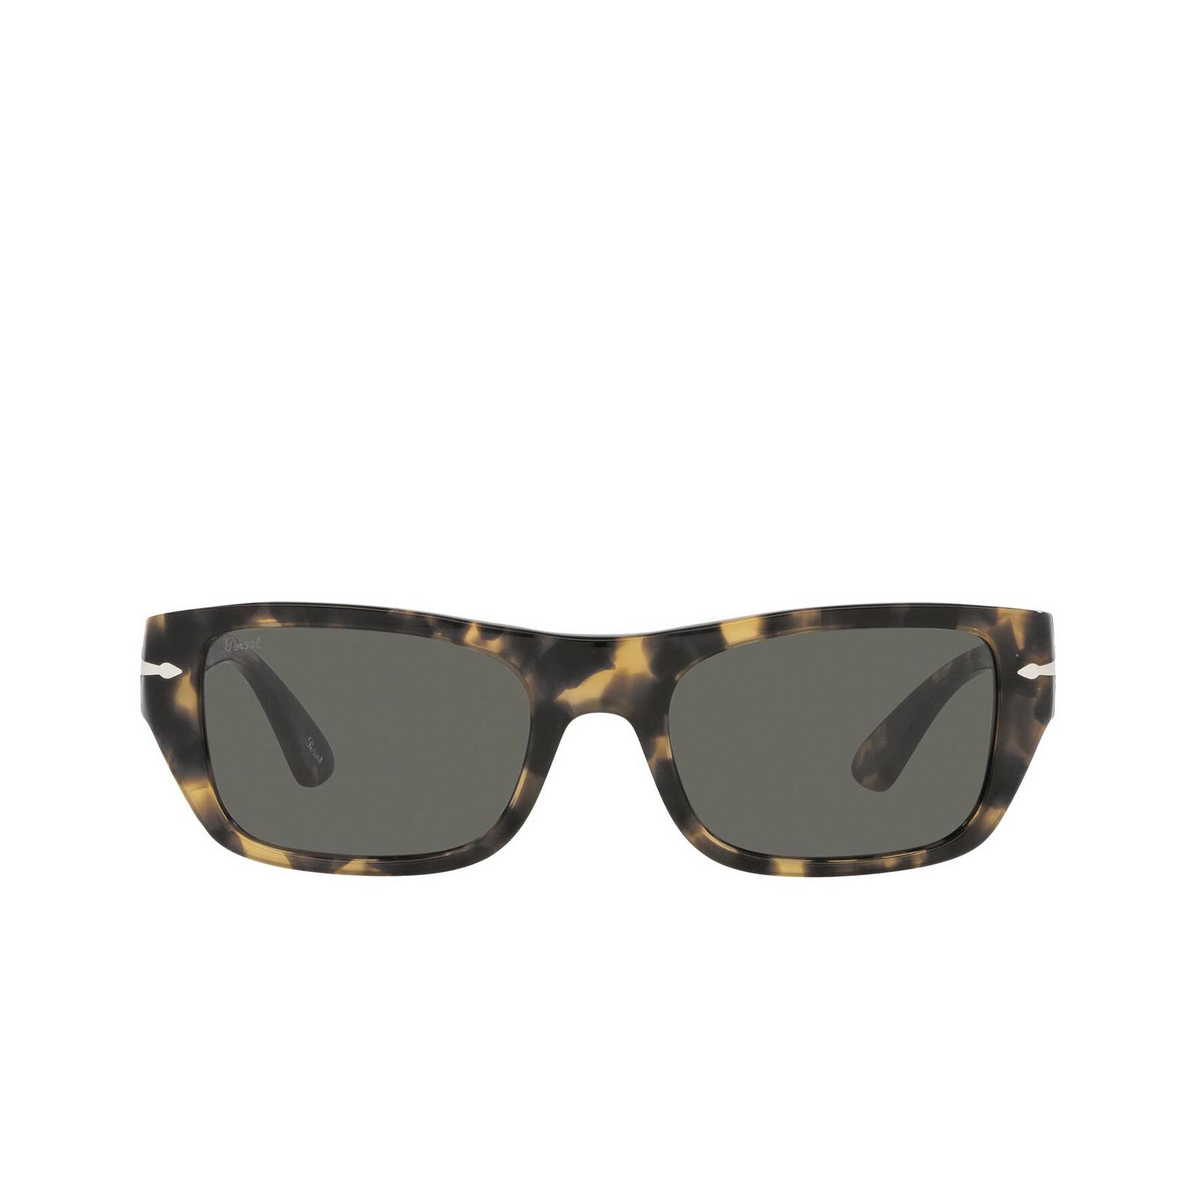 Persol® Rectangle Sunglasses: PO3268S color Brown / Tortoise Beige 1056B1 - front view.